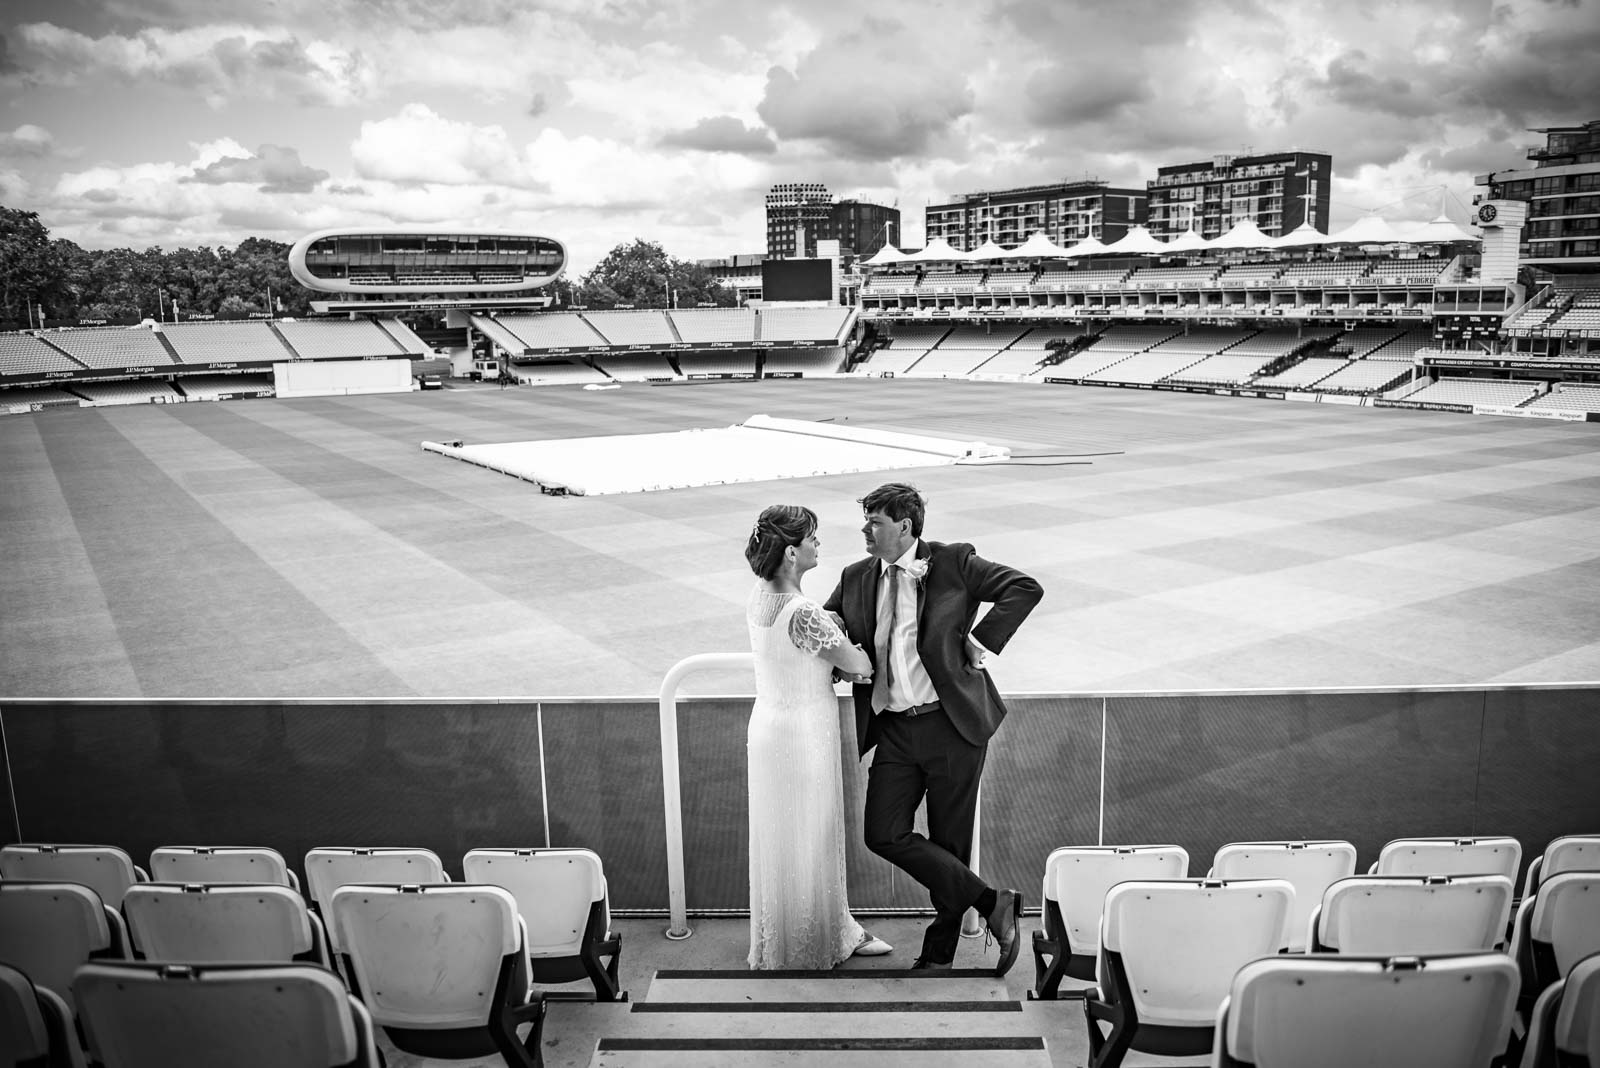 lords cricket ground wedding photography john and mary 219 of 267